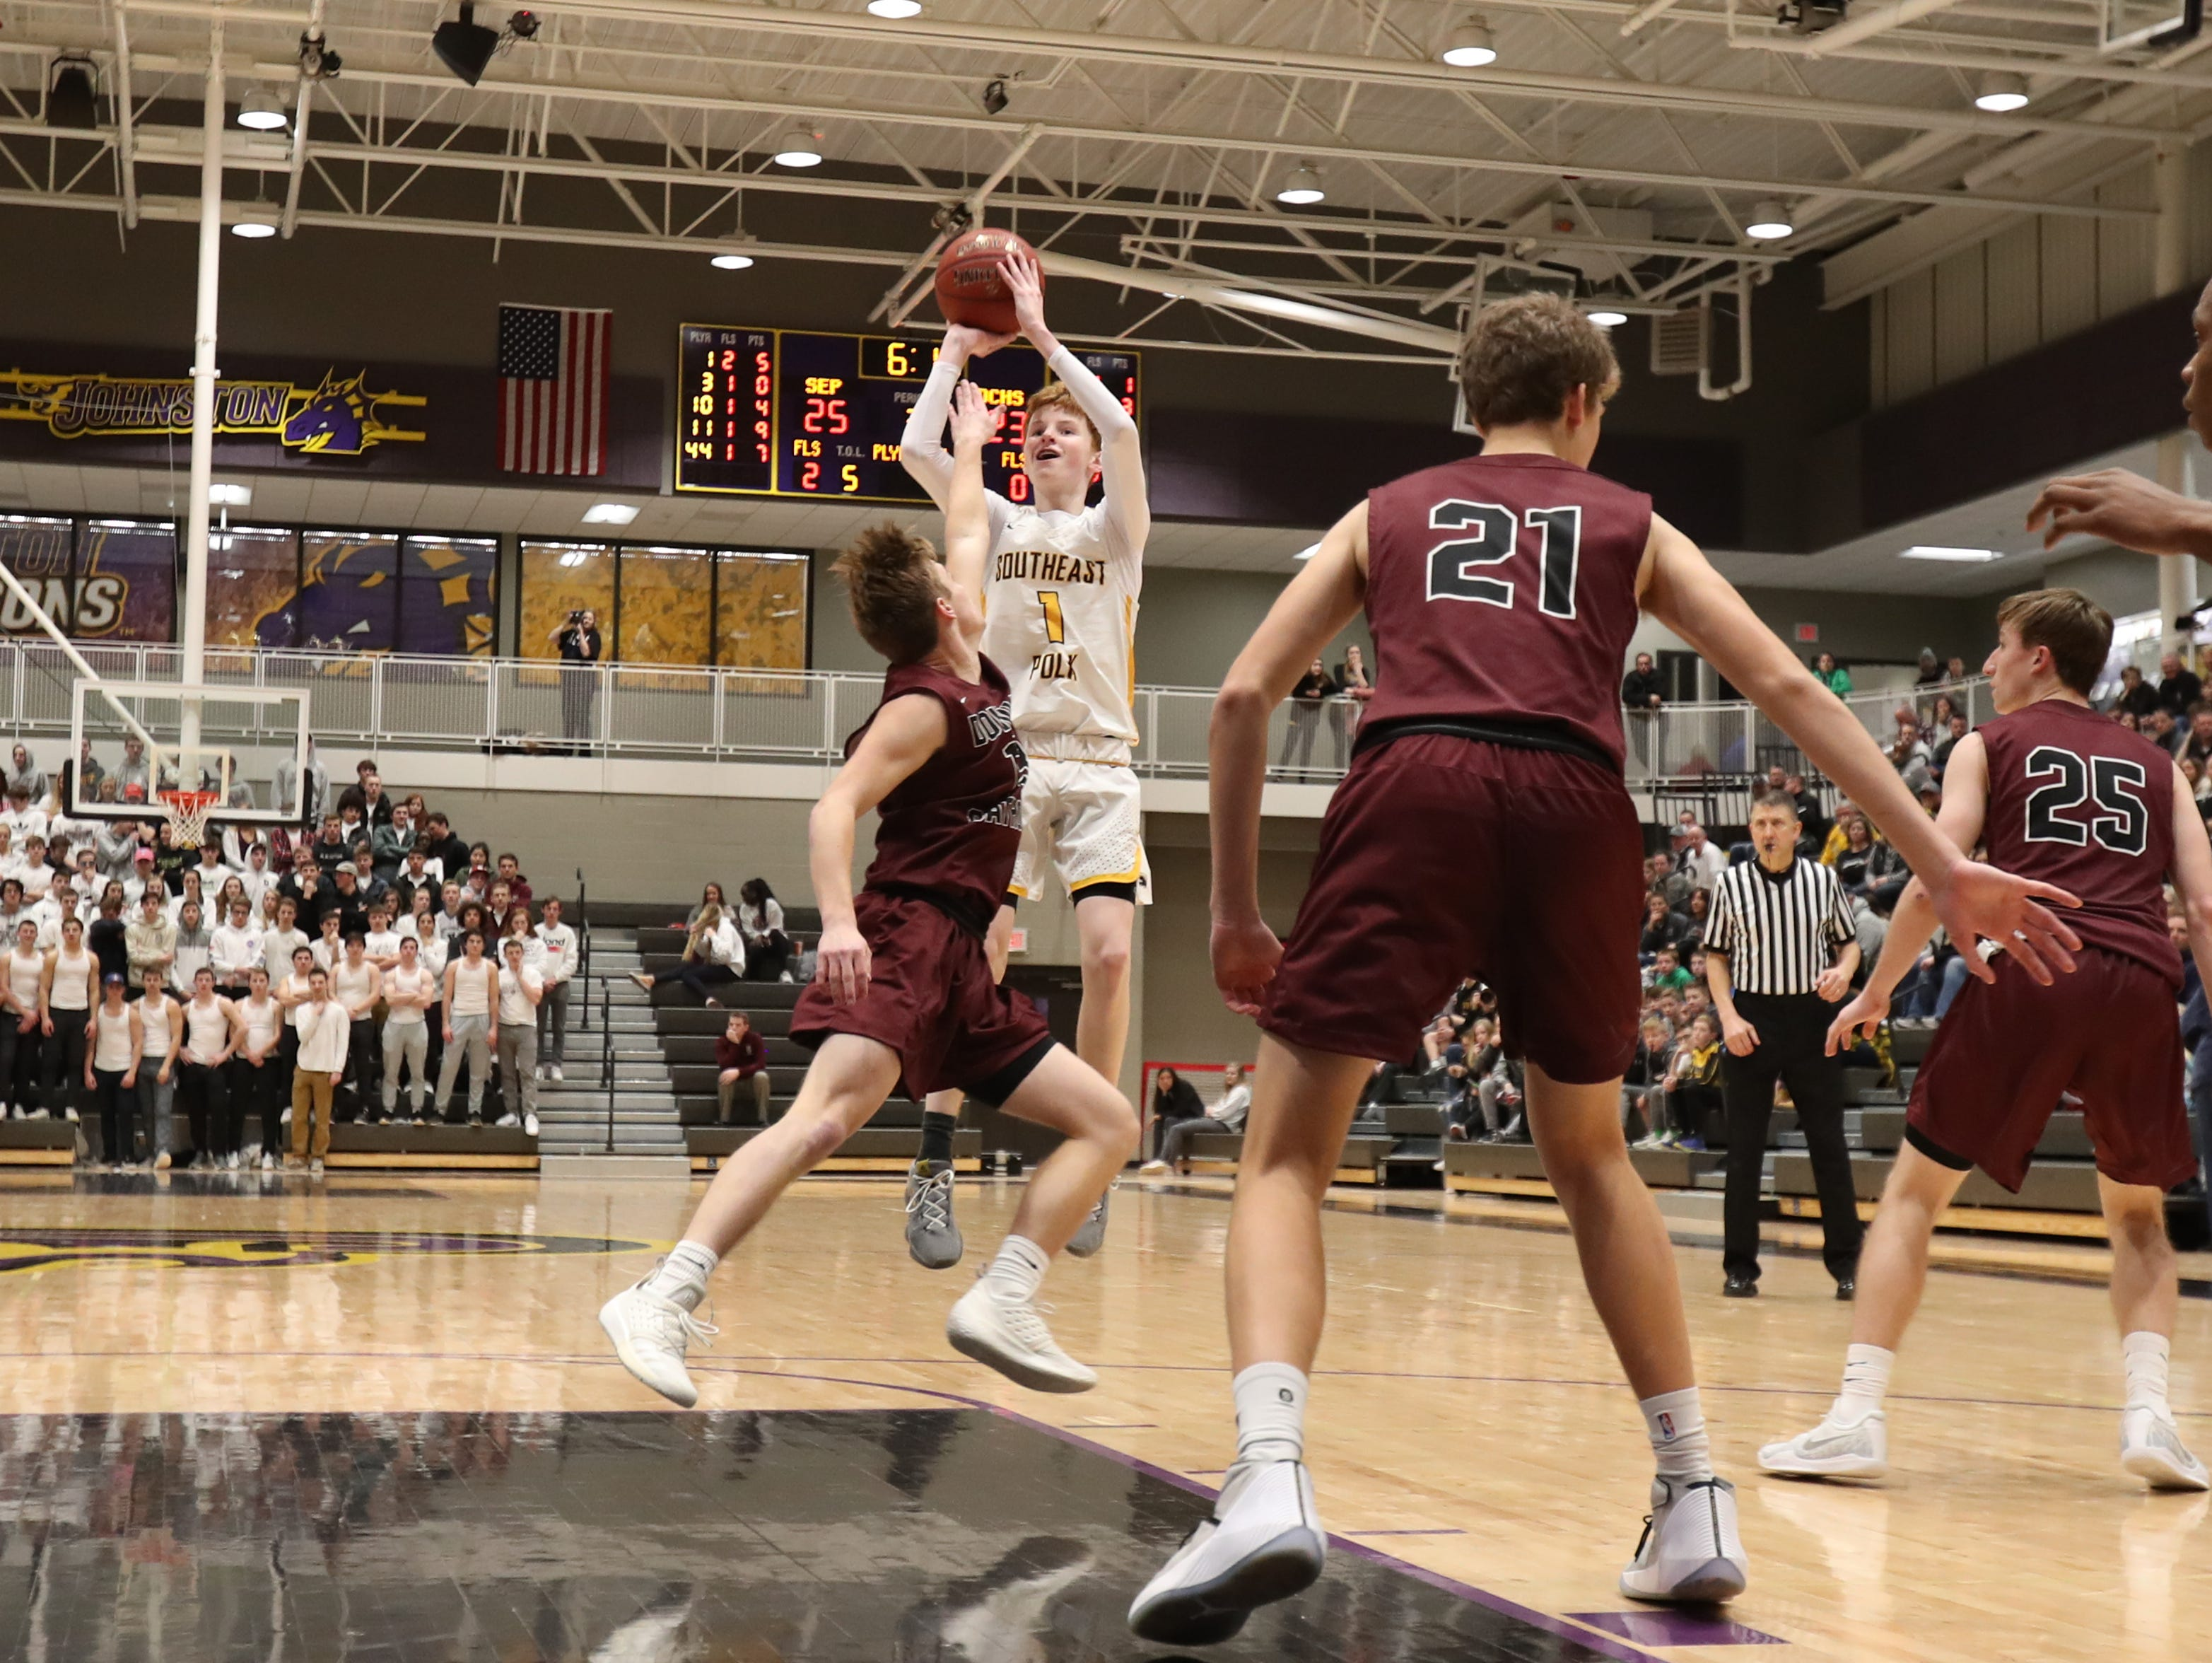 Southeast Polk's James Glenn (1) pulls up and shoots in the lane against Dowling Catholic during their game at Johnston High School in Johnston, Iowa, on Tuesday, Feb. 26, 2019. Dowling won the game 44-40 to advance to state.